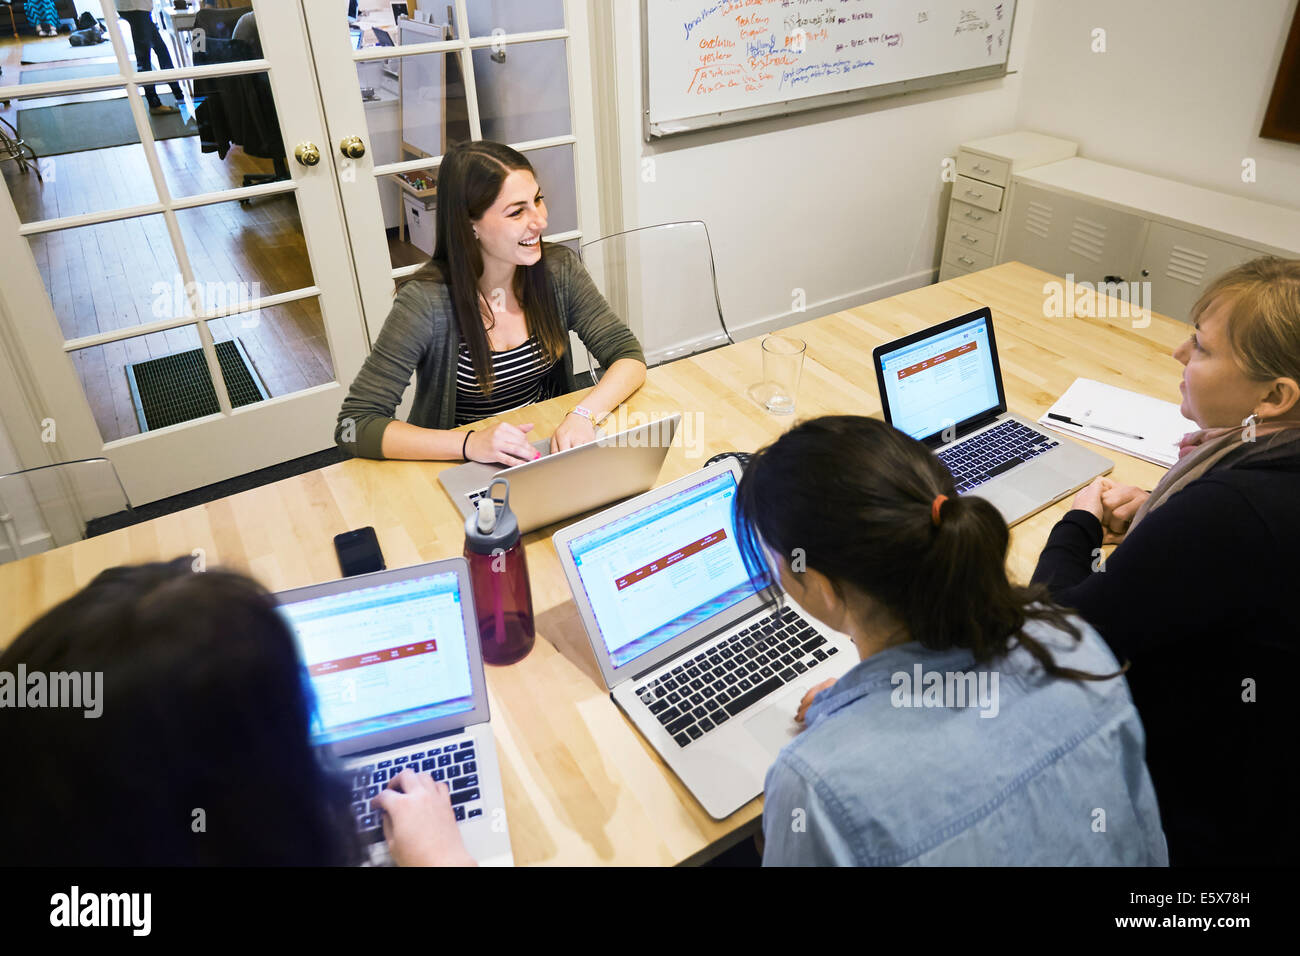 Female colleagues in a meeting with laptops - Stock Image